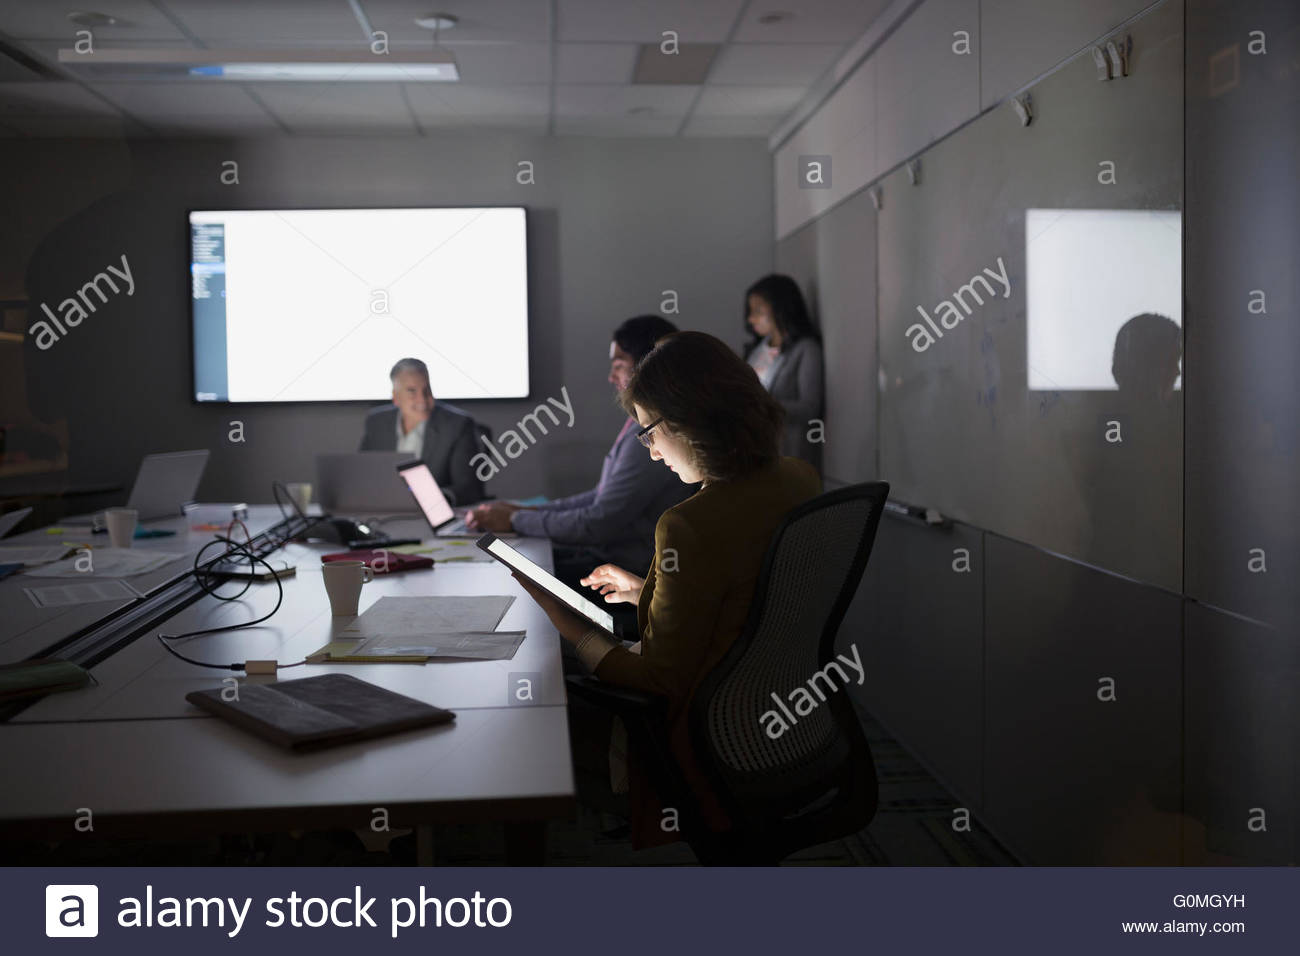 Businesswoman using digital tablet dark conference room meeting - Stock Image